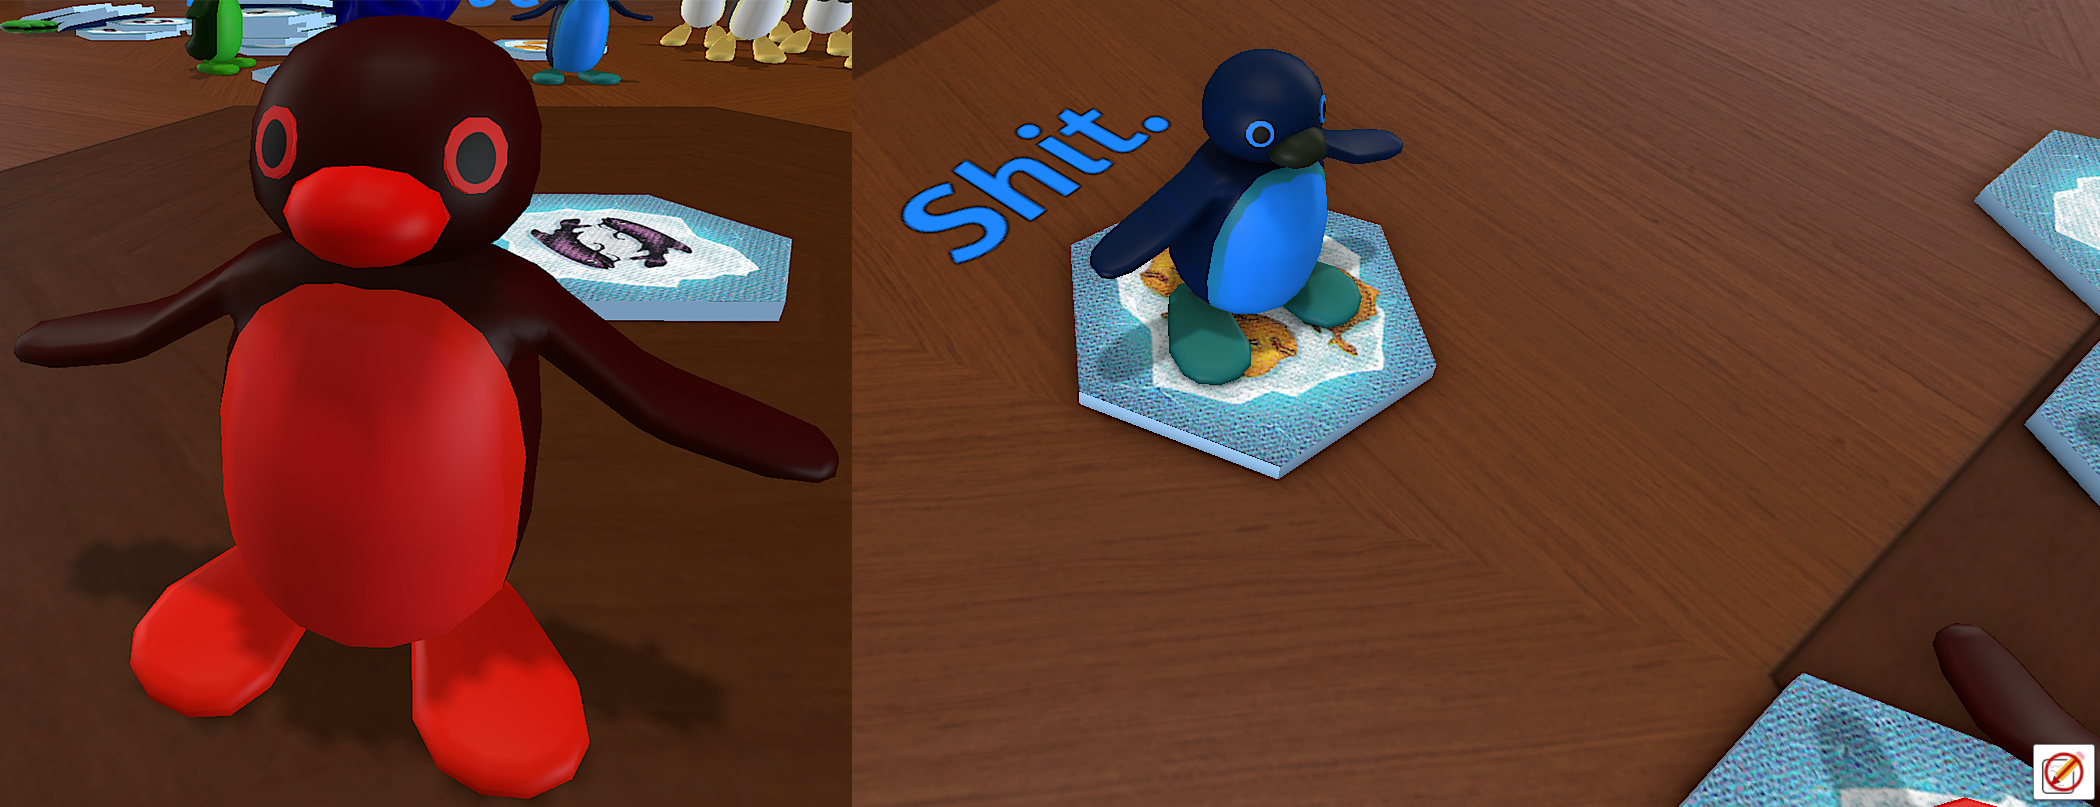 Pingus from Hey Thats My Fish